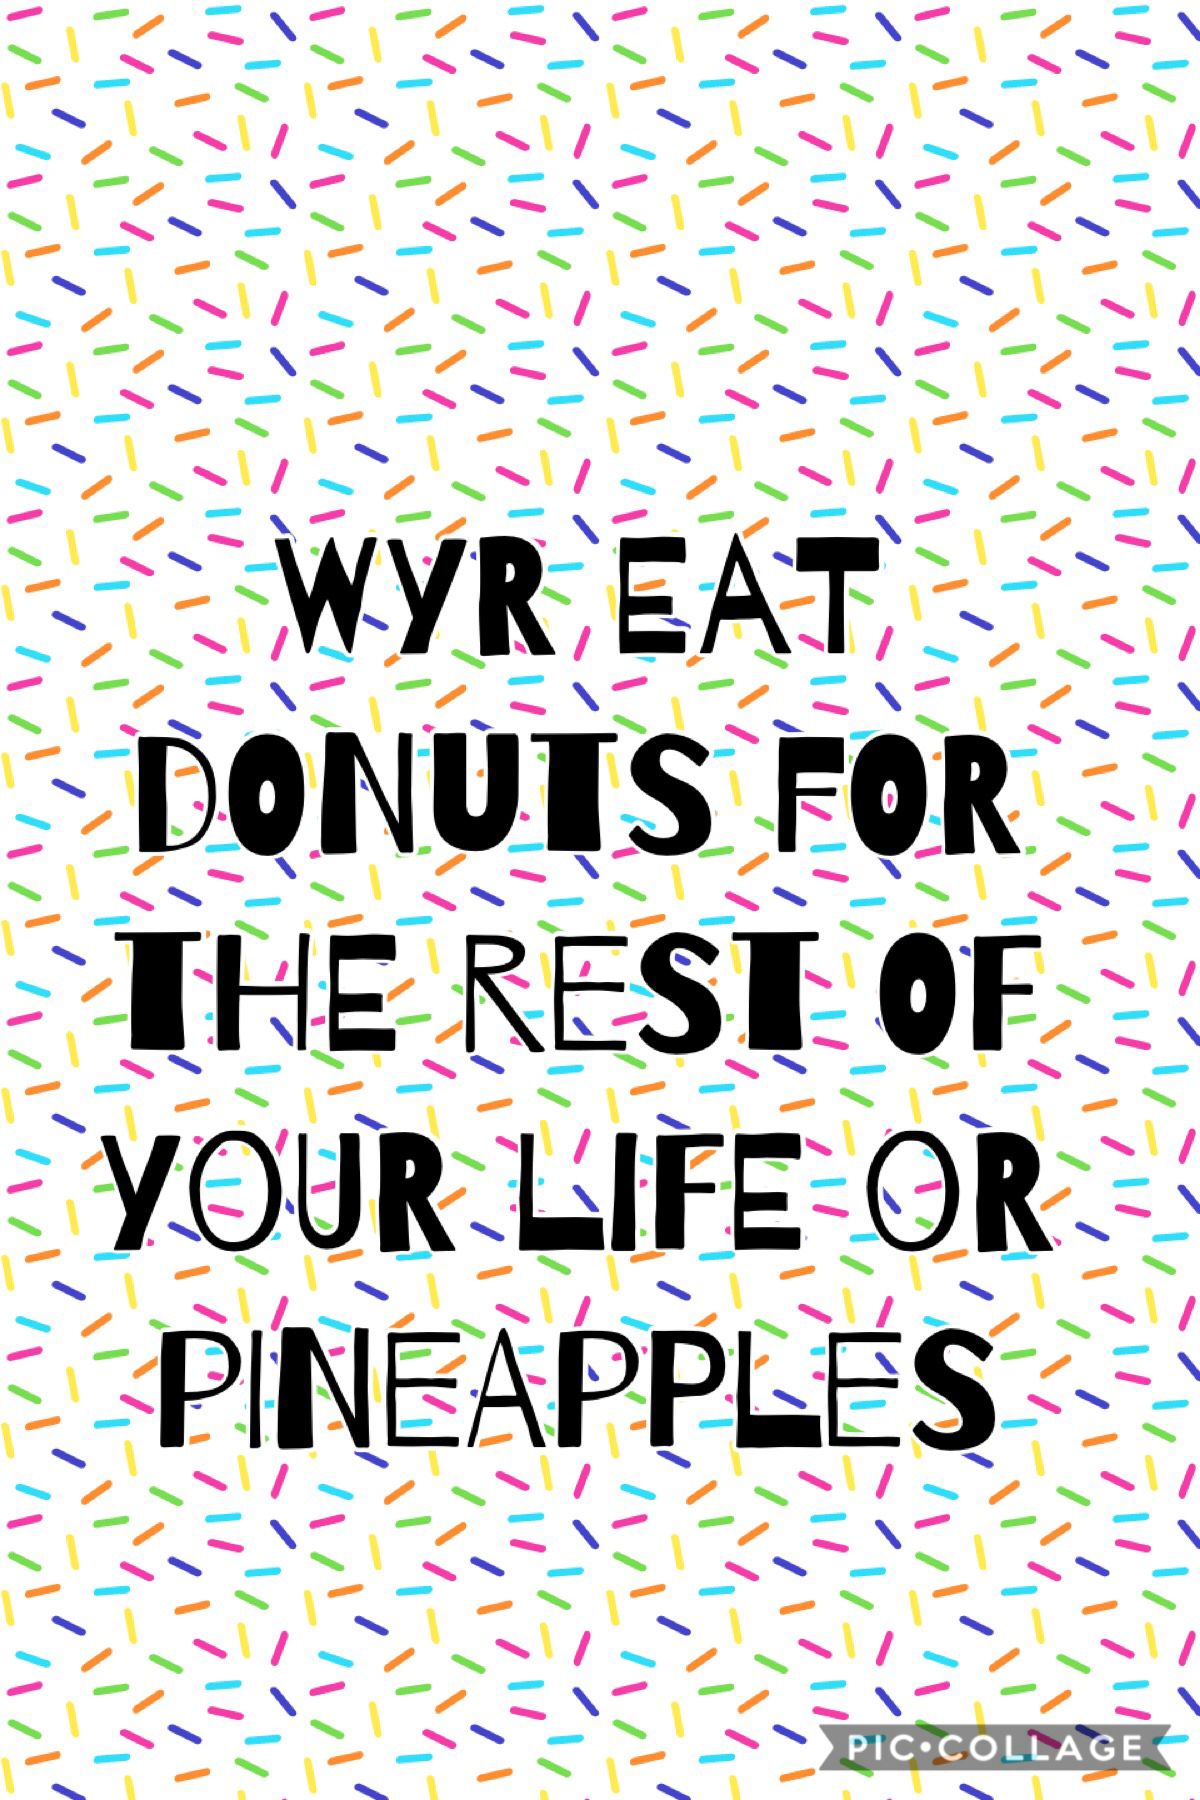 Pineapple or donuts